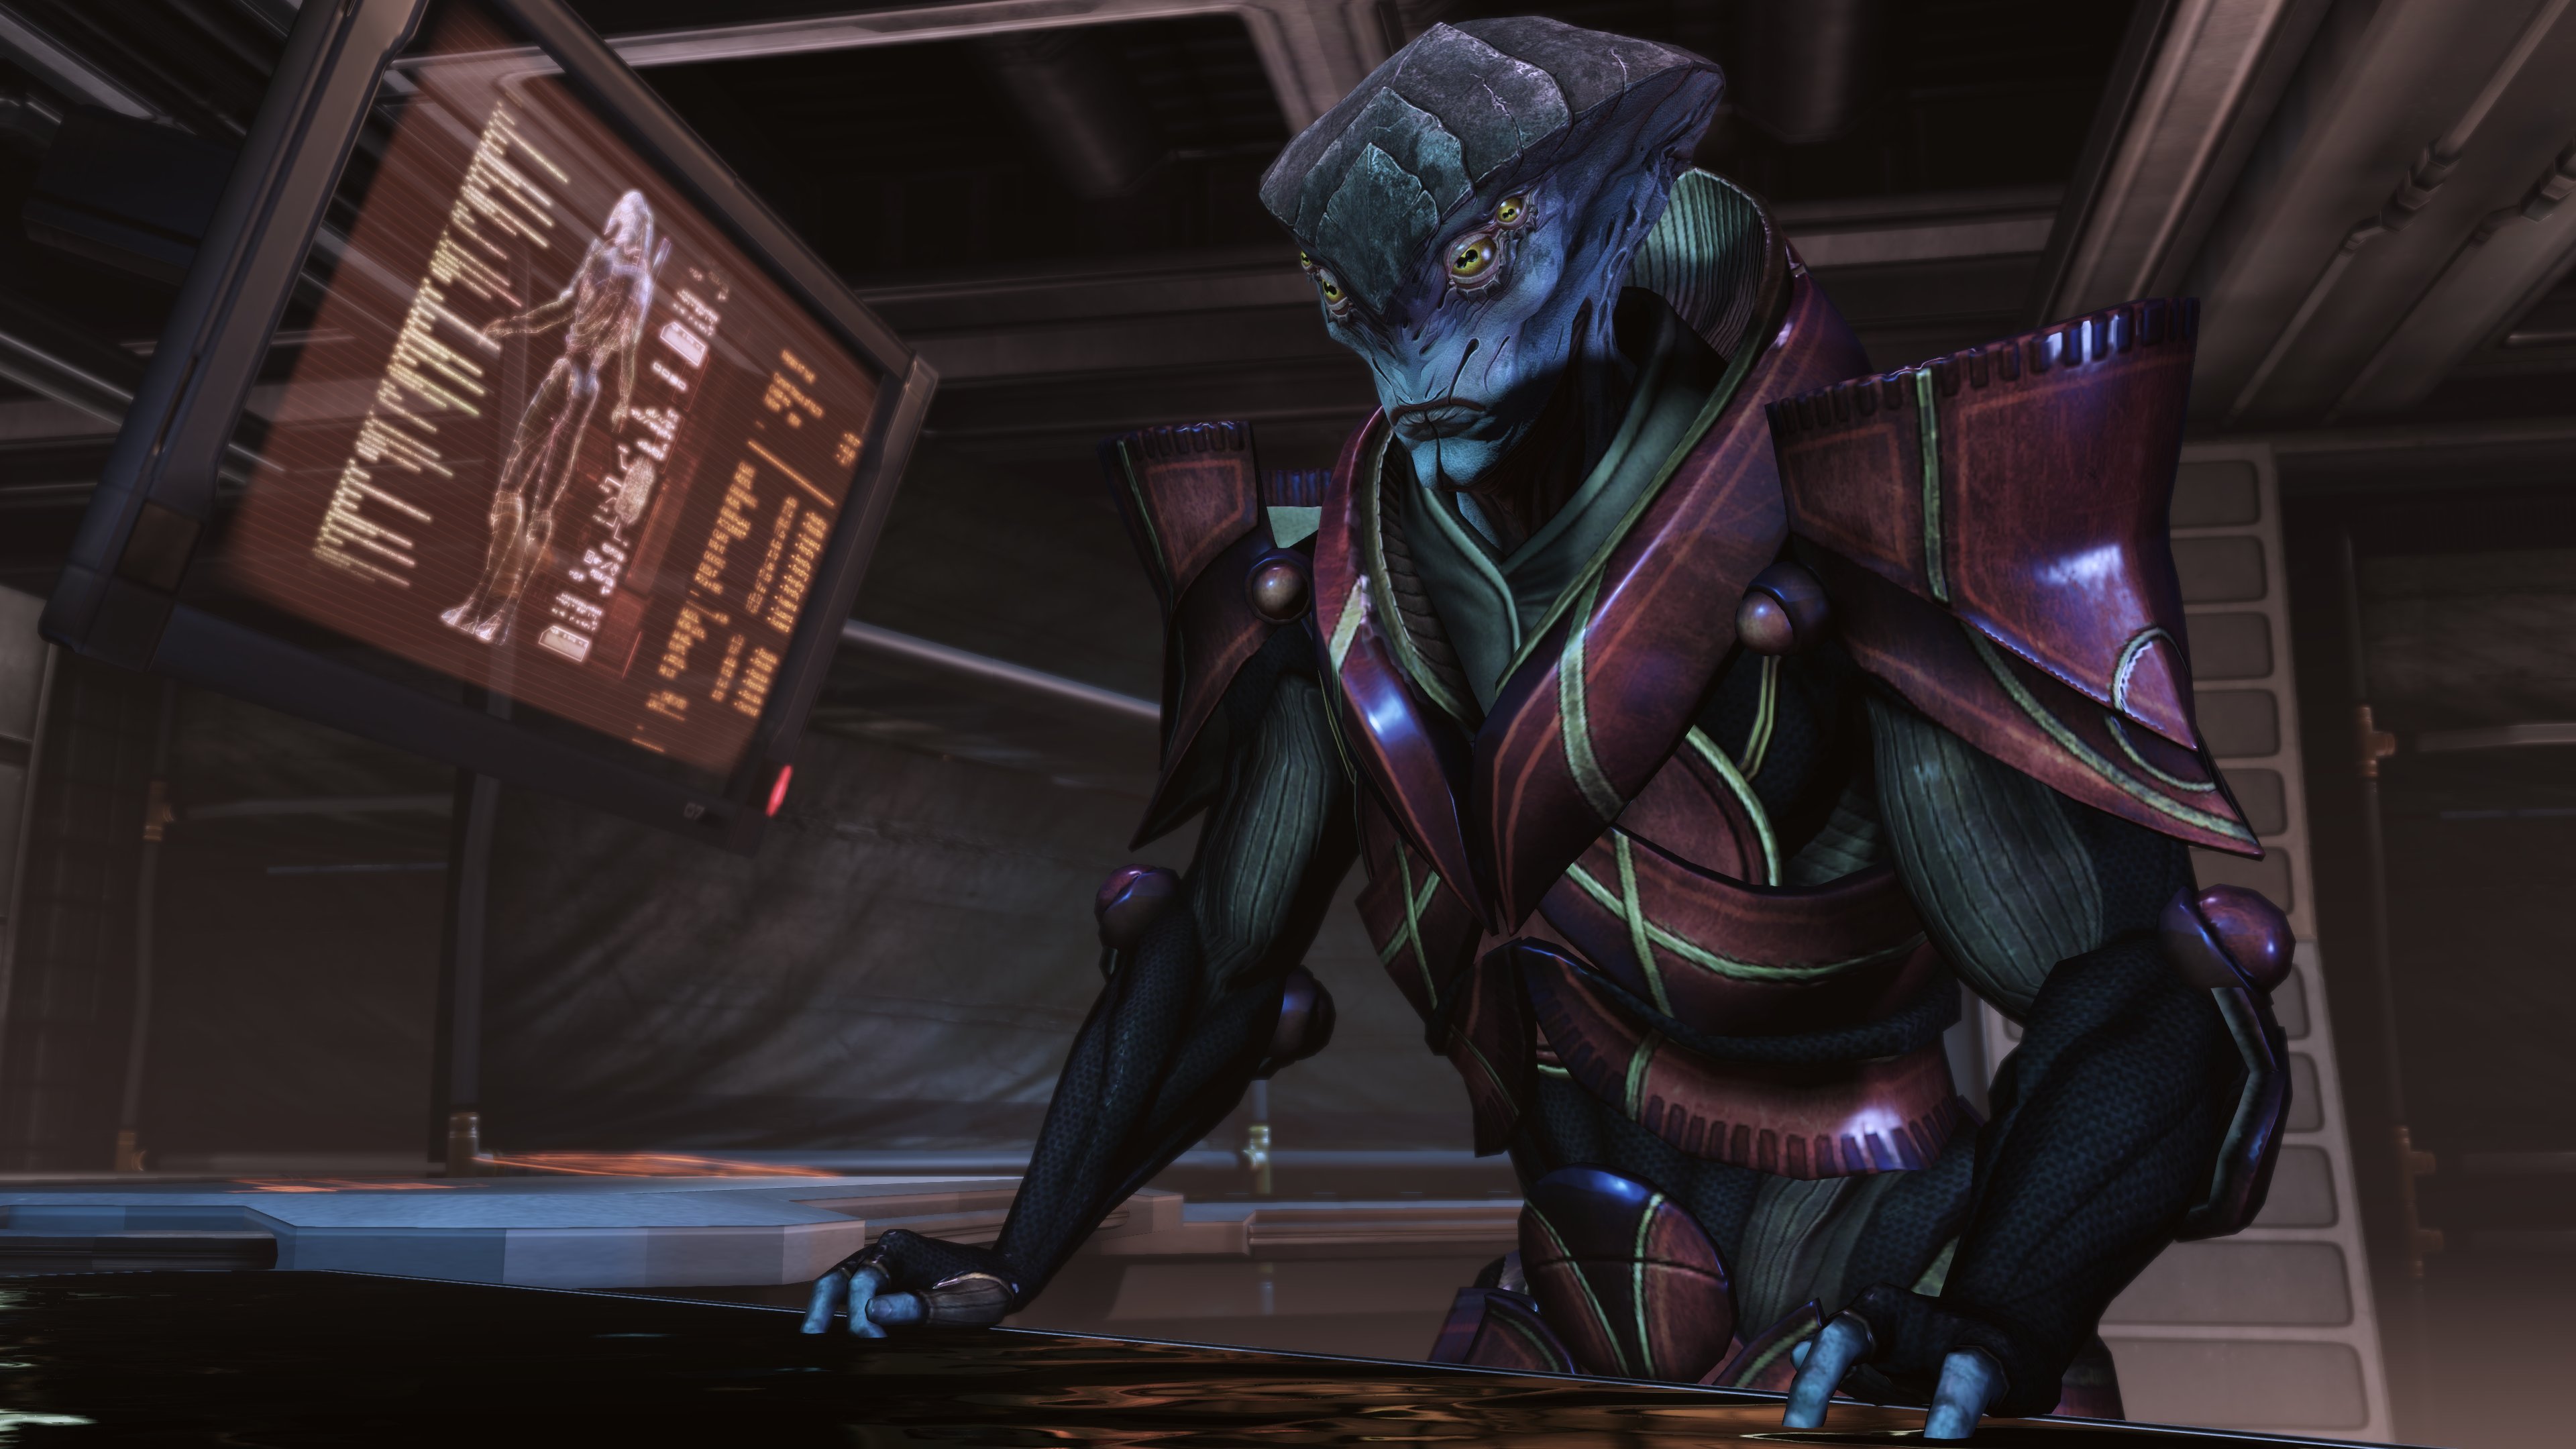 https://vignette2.wikia.nocookie.net/masseffect/images/5/57/Javik_studying.png/revision/latest?cb=20131002123357